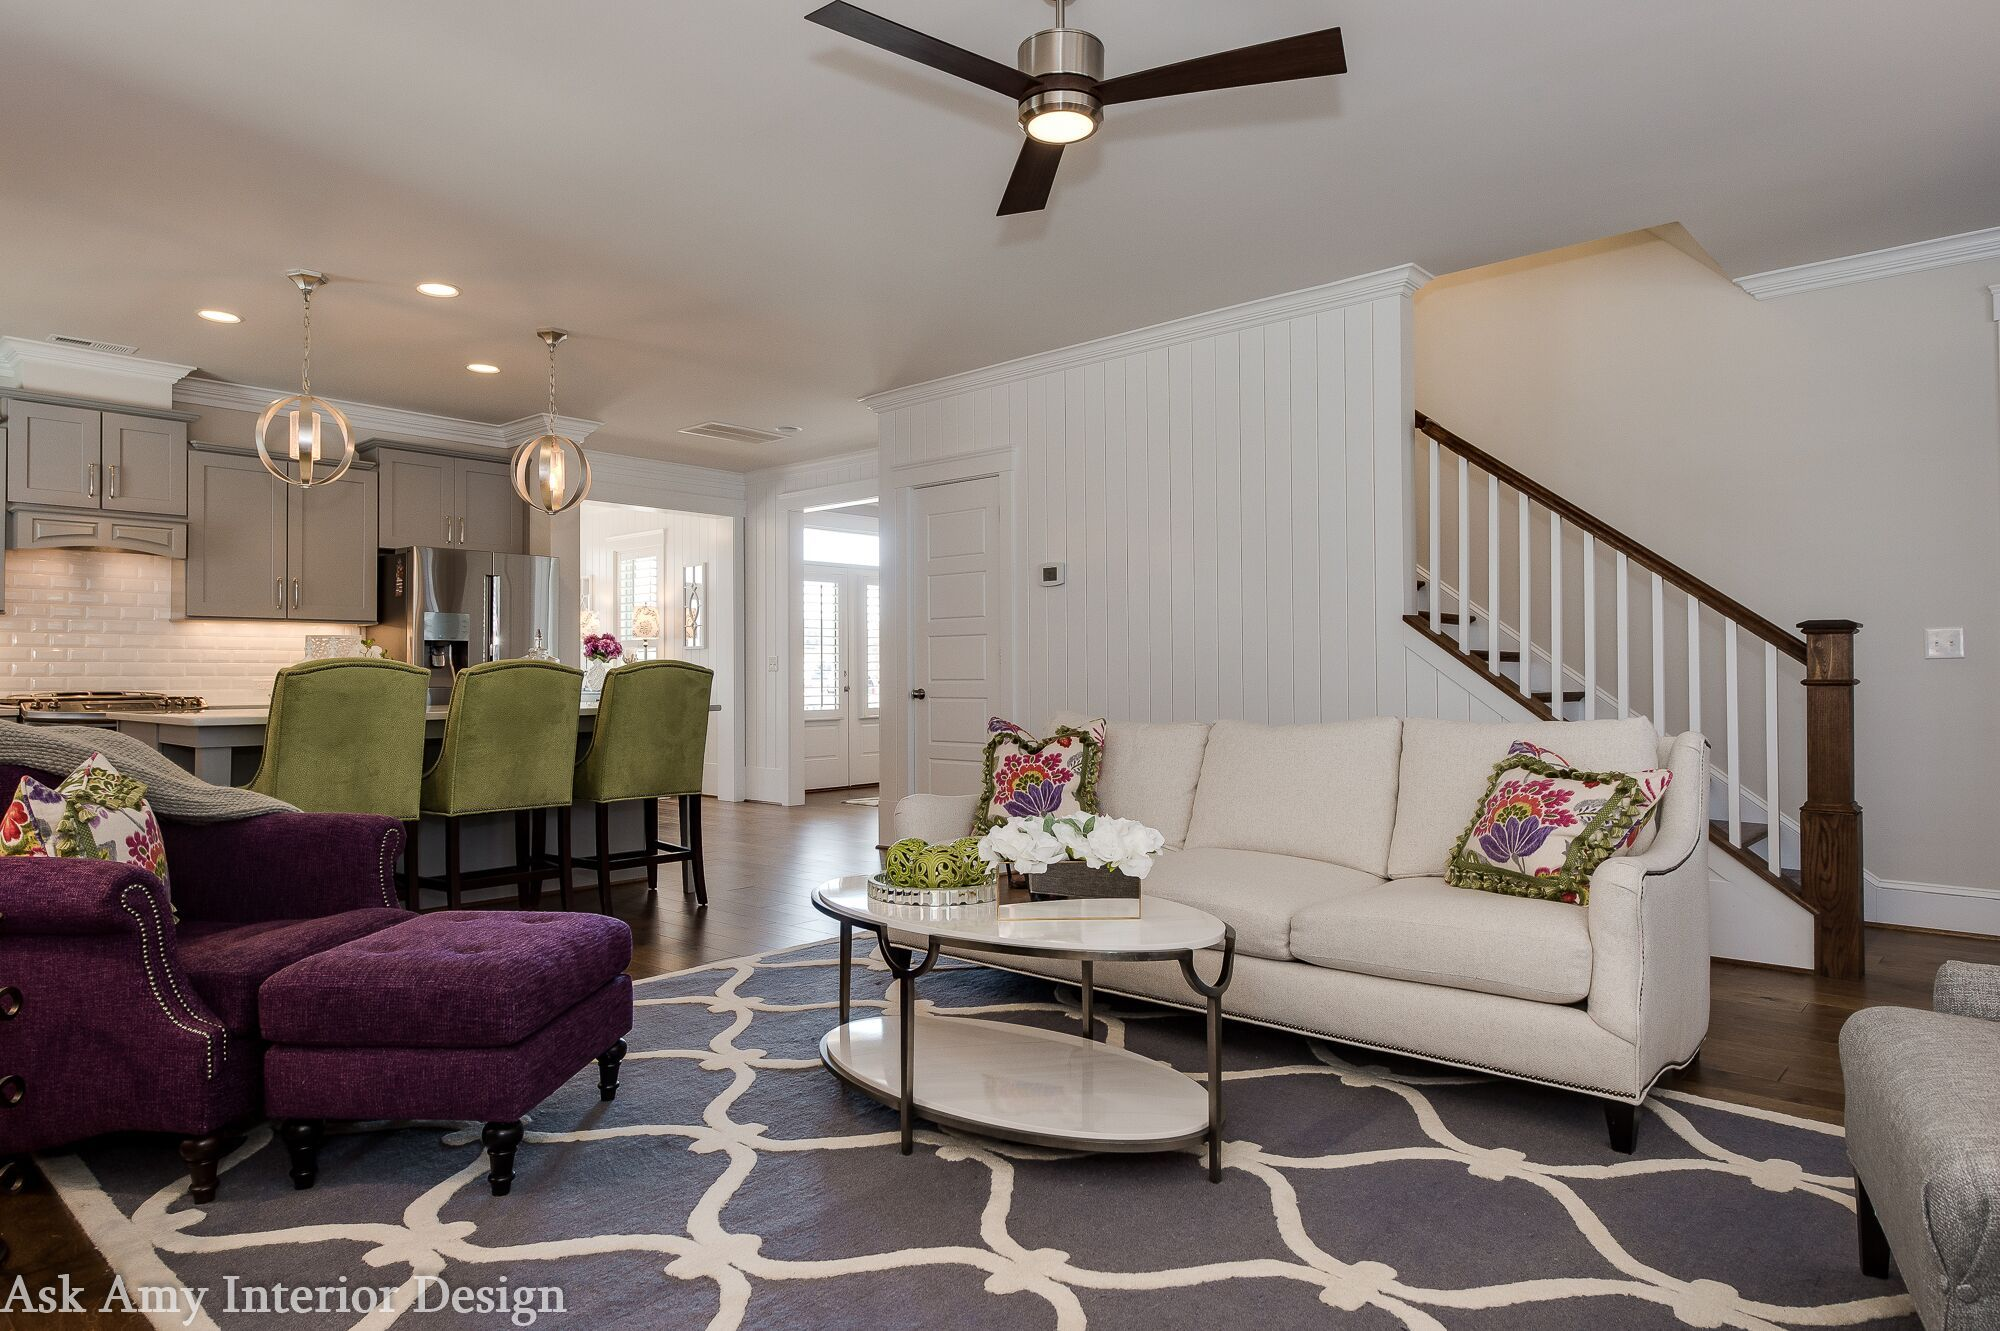 Interior Design Firms Charlotte Nc.Home Ask Amy Interior Design New Interior Design House